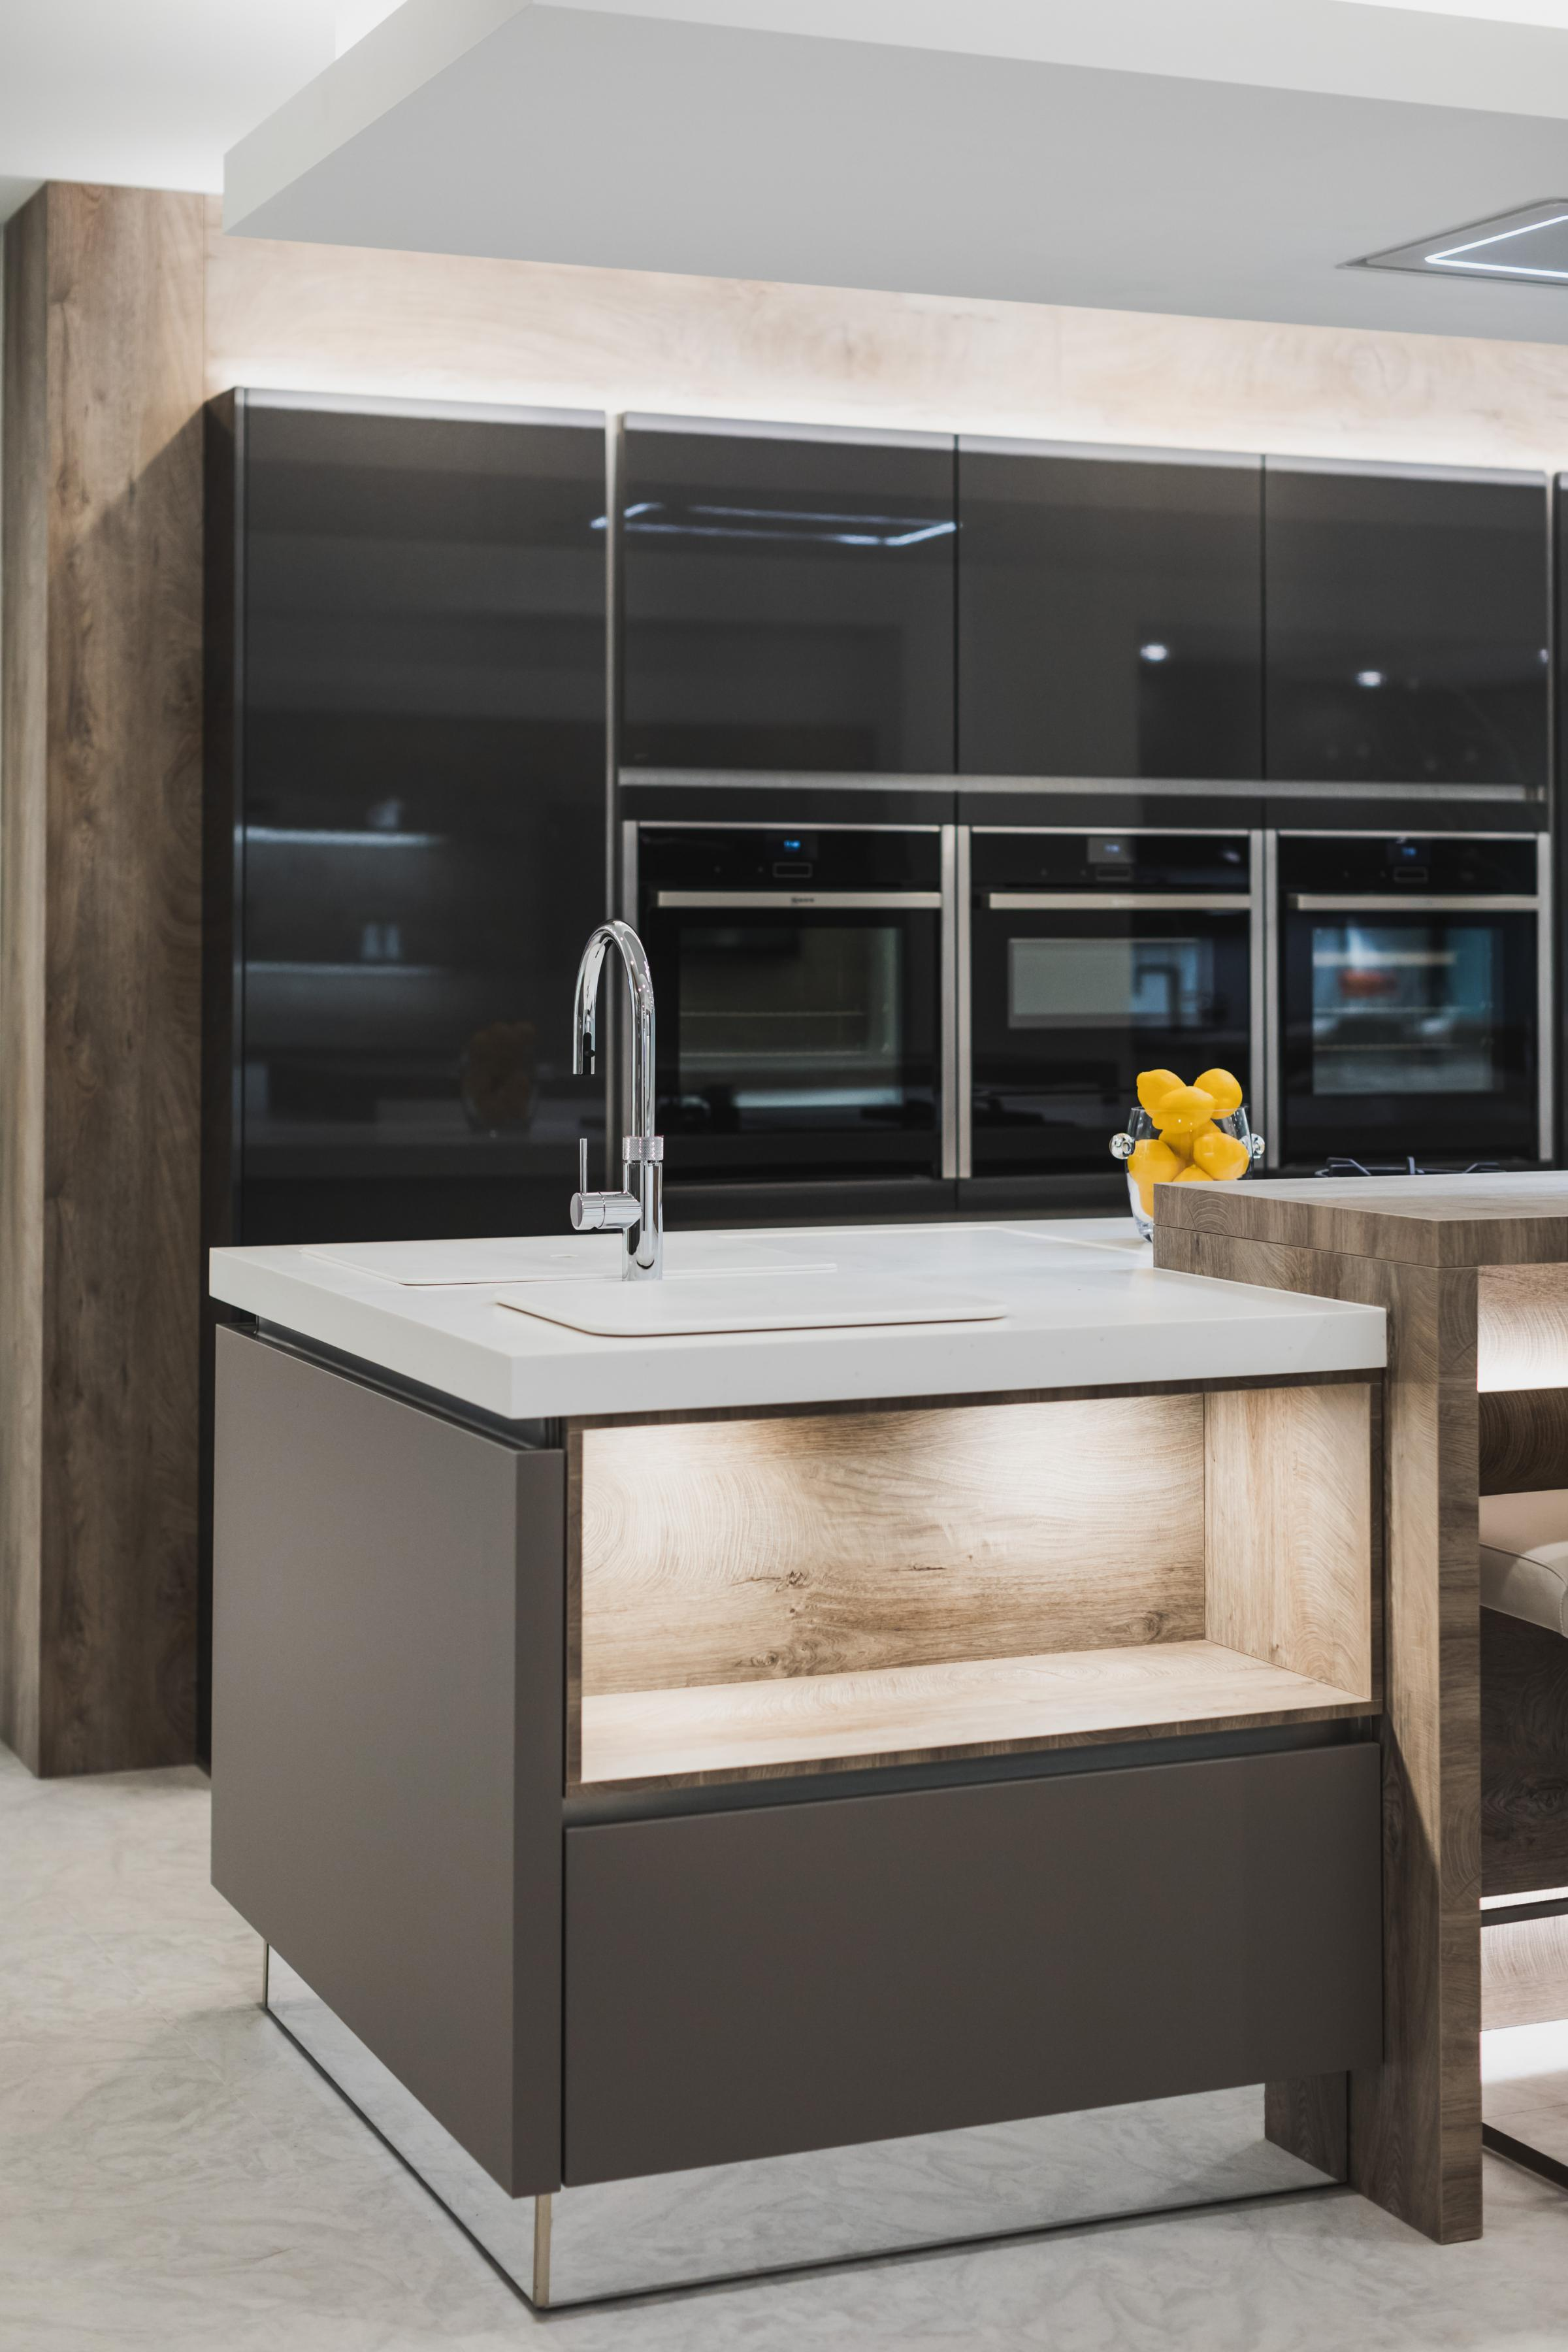 PICTURES: Kitchen Firm Creates 5 Jobs And Relocates To £300,000 Showroom.  The Kitchen Design Centreu0027s New Showroom In Barrowford